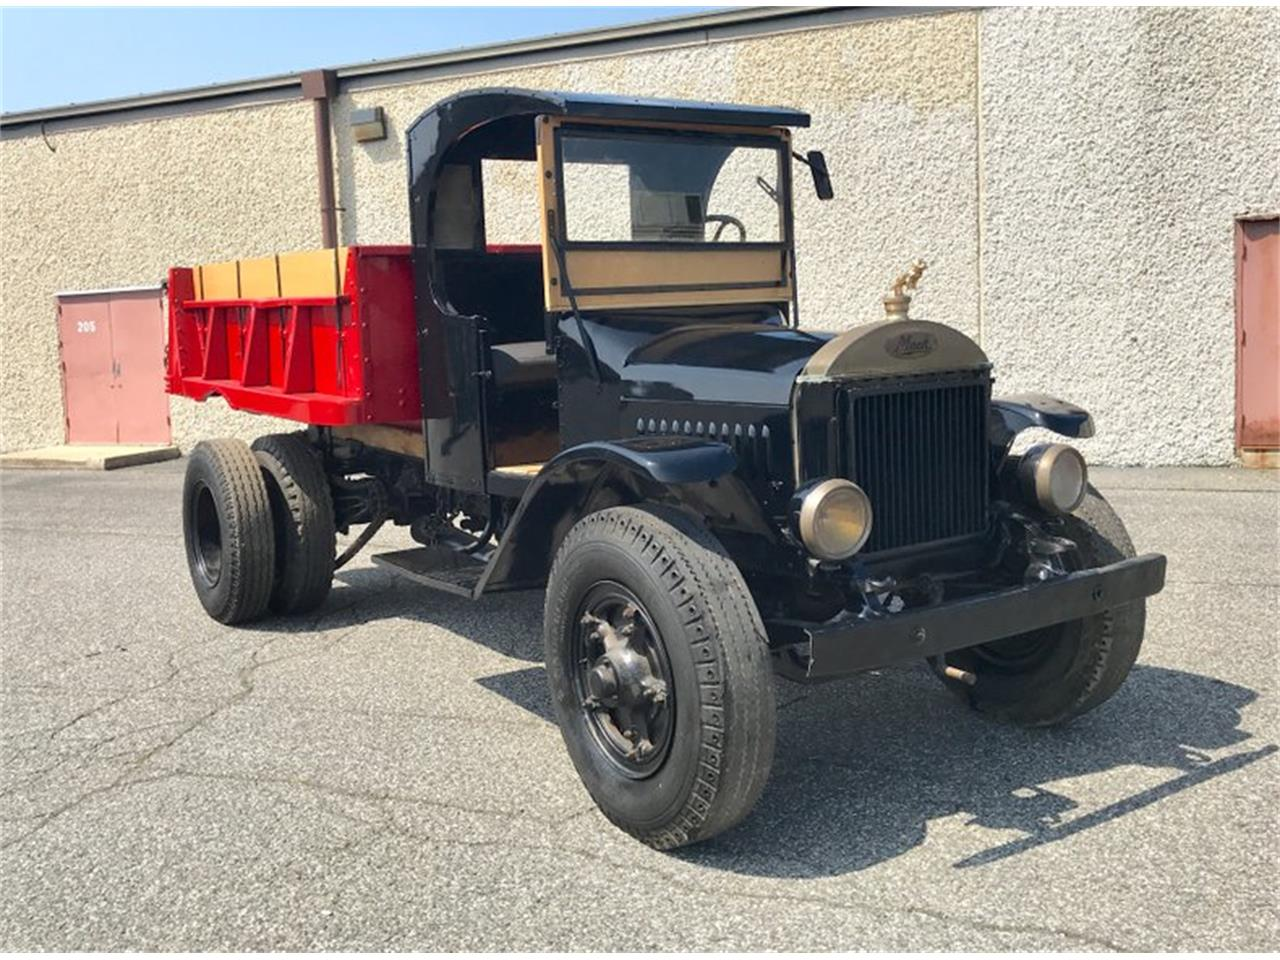 Slow and Cool: This 1930 Mack AB 5-Ton Dump Truck Is One Tough Old Bastard